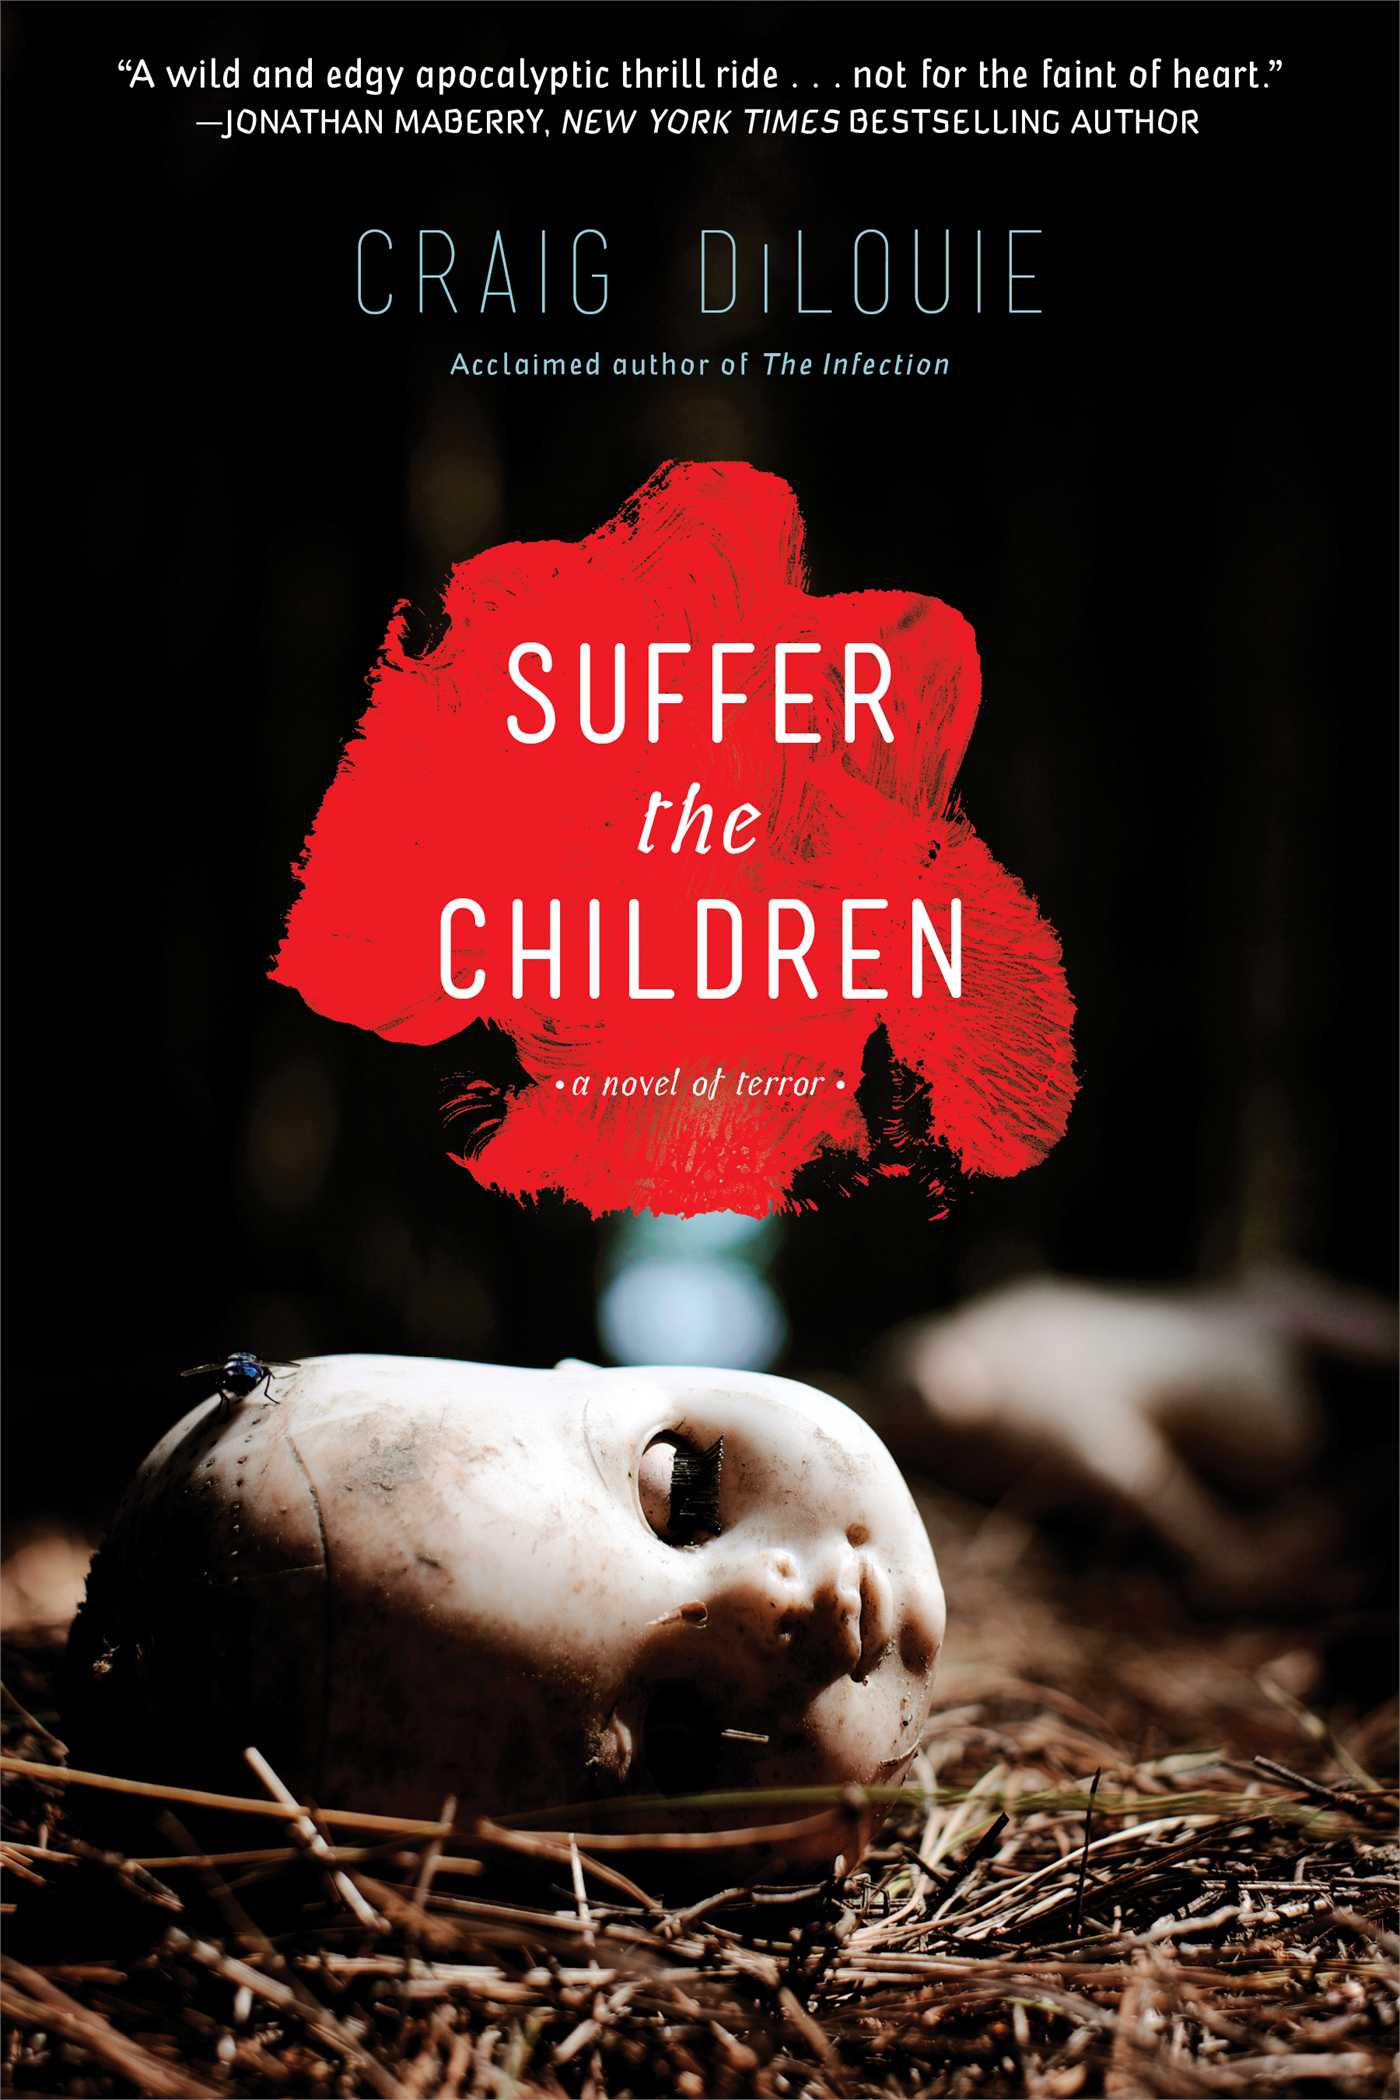 Suffer-the-children-9781476739632_hr